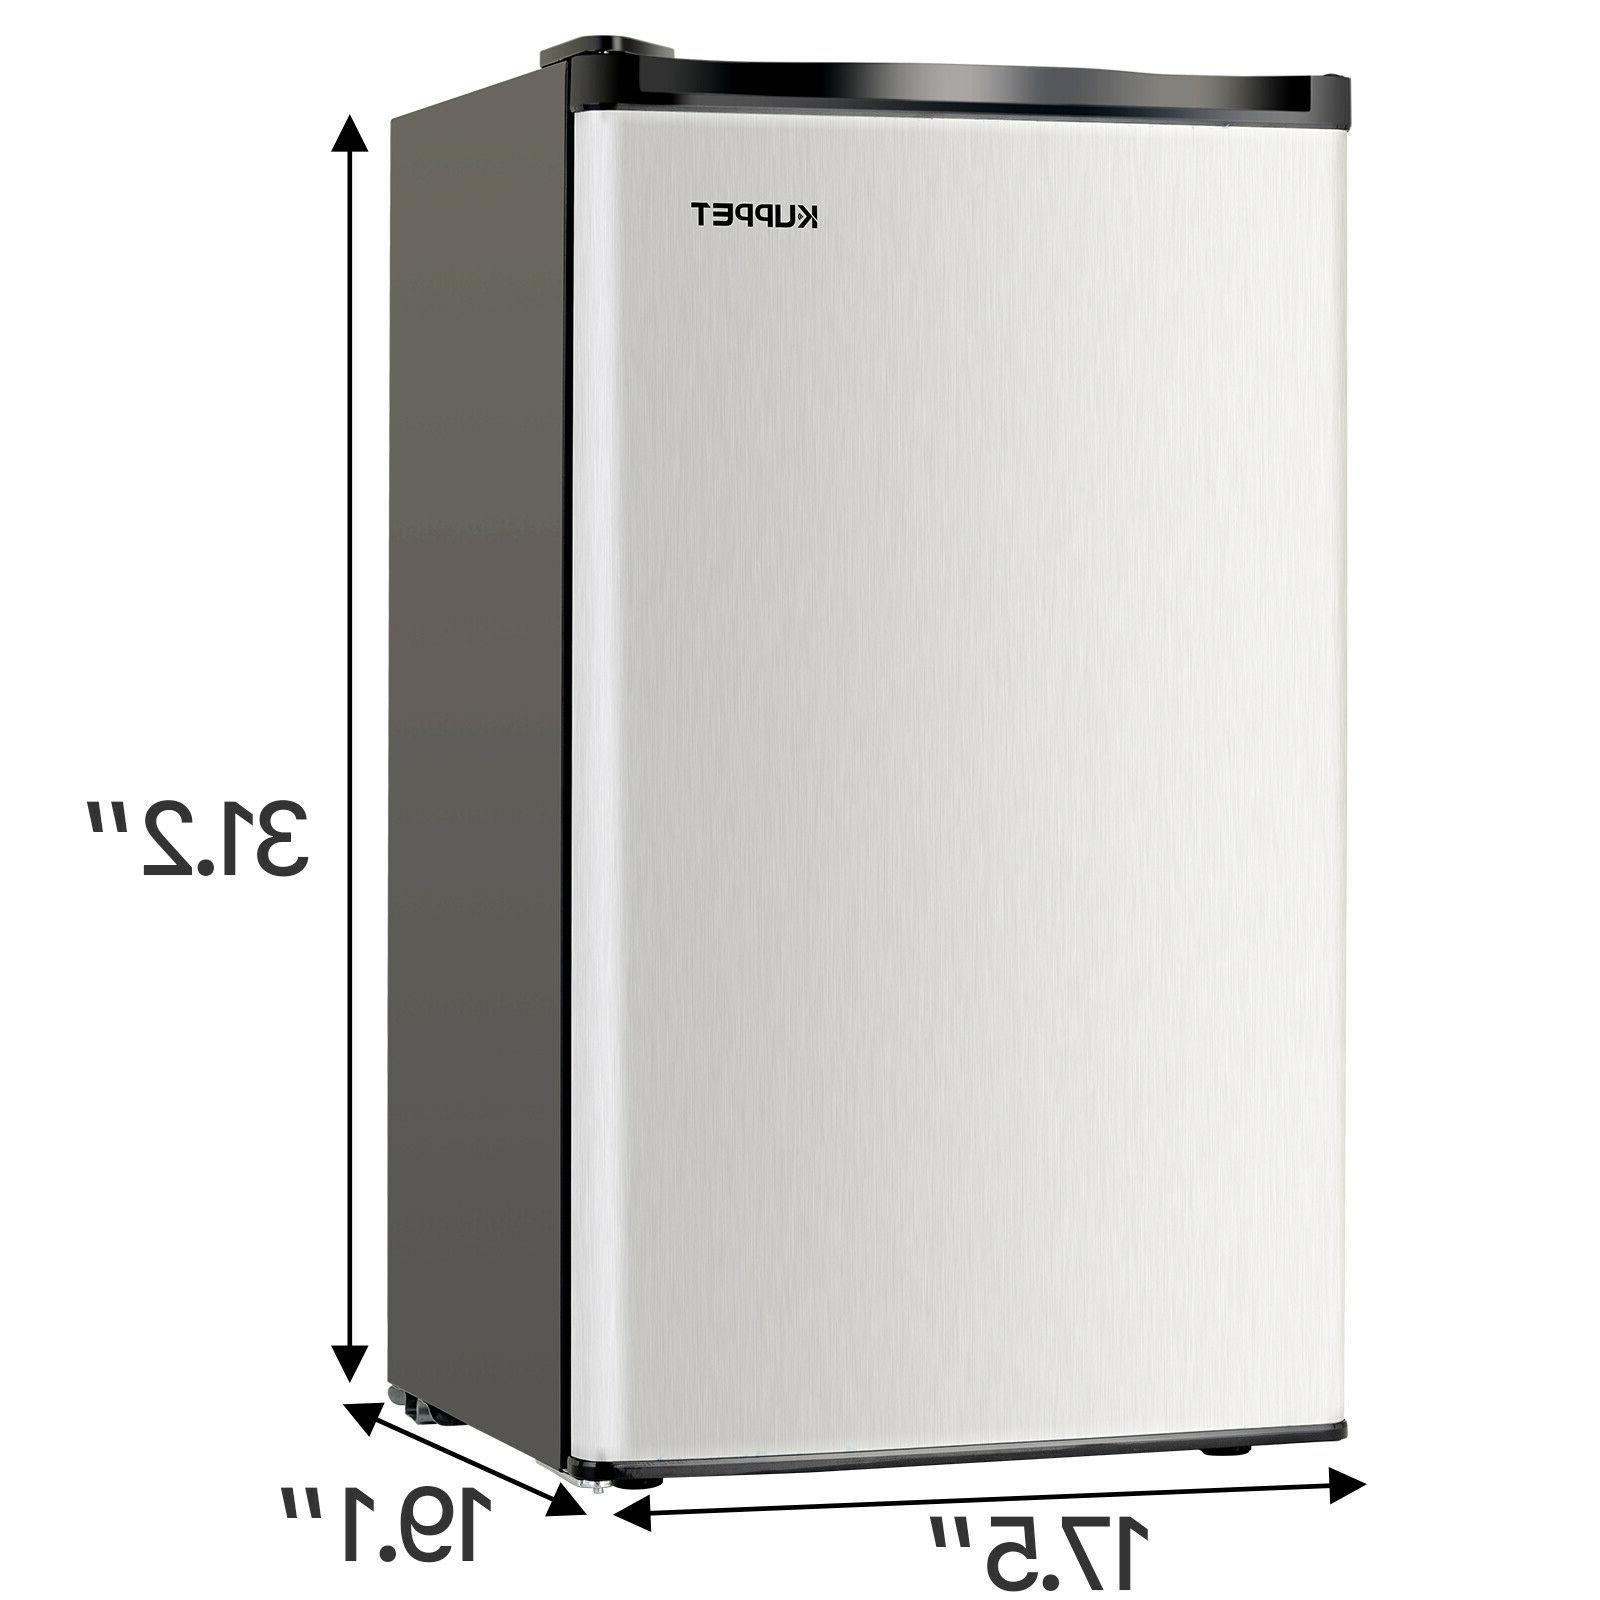 3.2 FT Mini Refrigerator Compact Fridge Stainless Freestanding